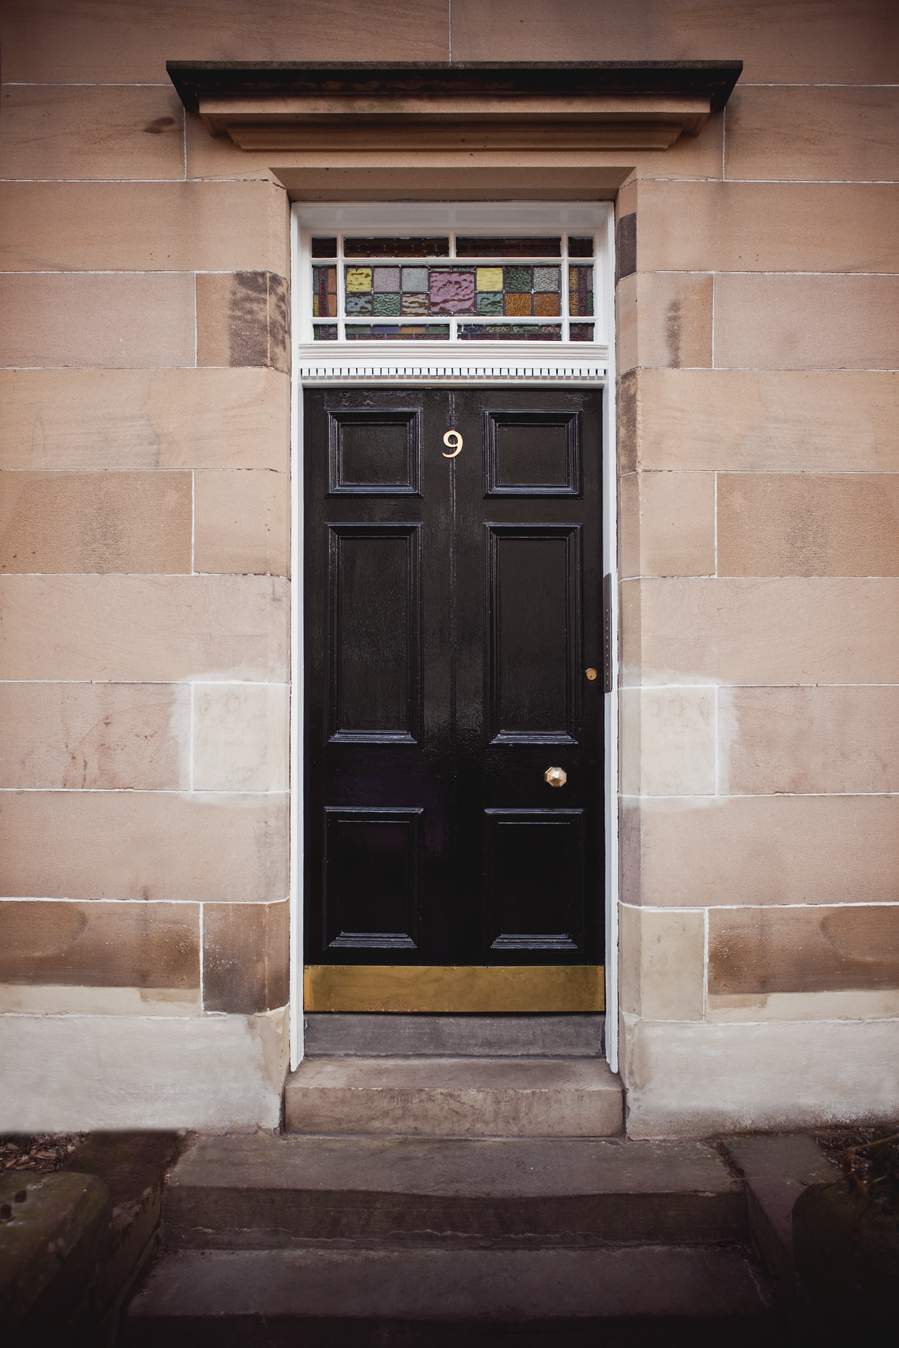 Spottiswoode Road, main door, Edinburgh